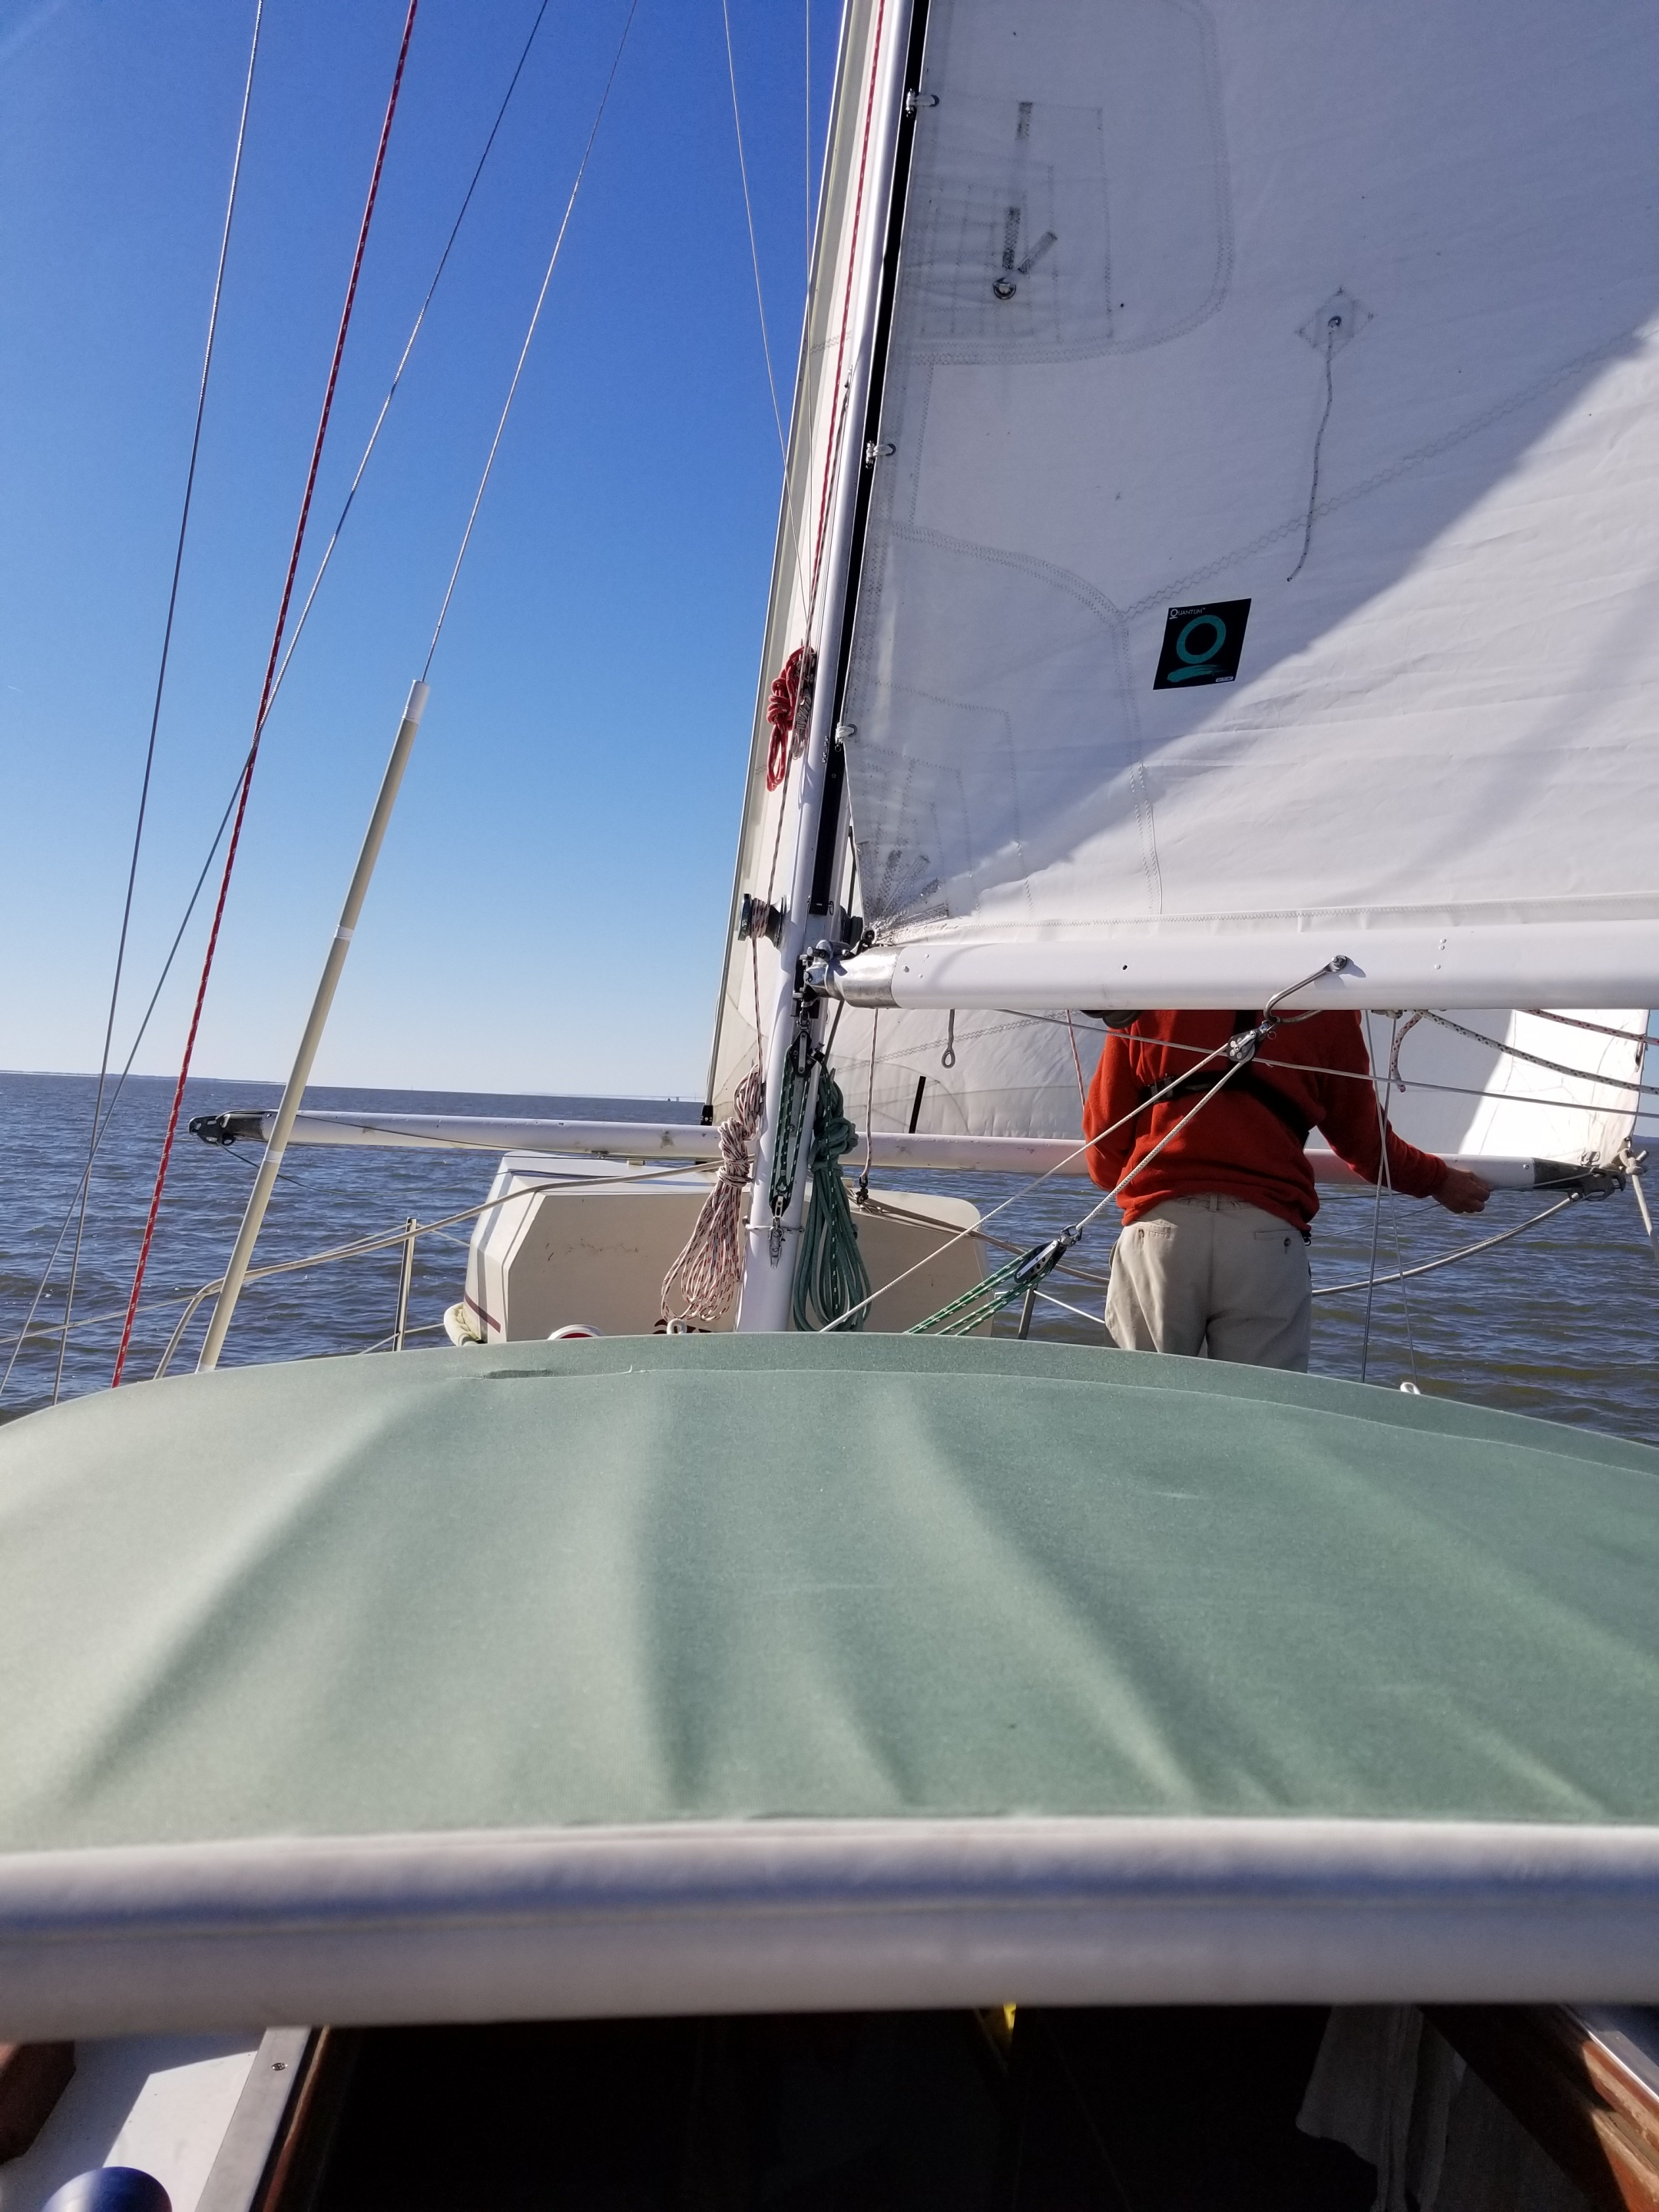 Dobbs sets the spinnaker pole as a whisker pole for the 135% genoa.